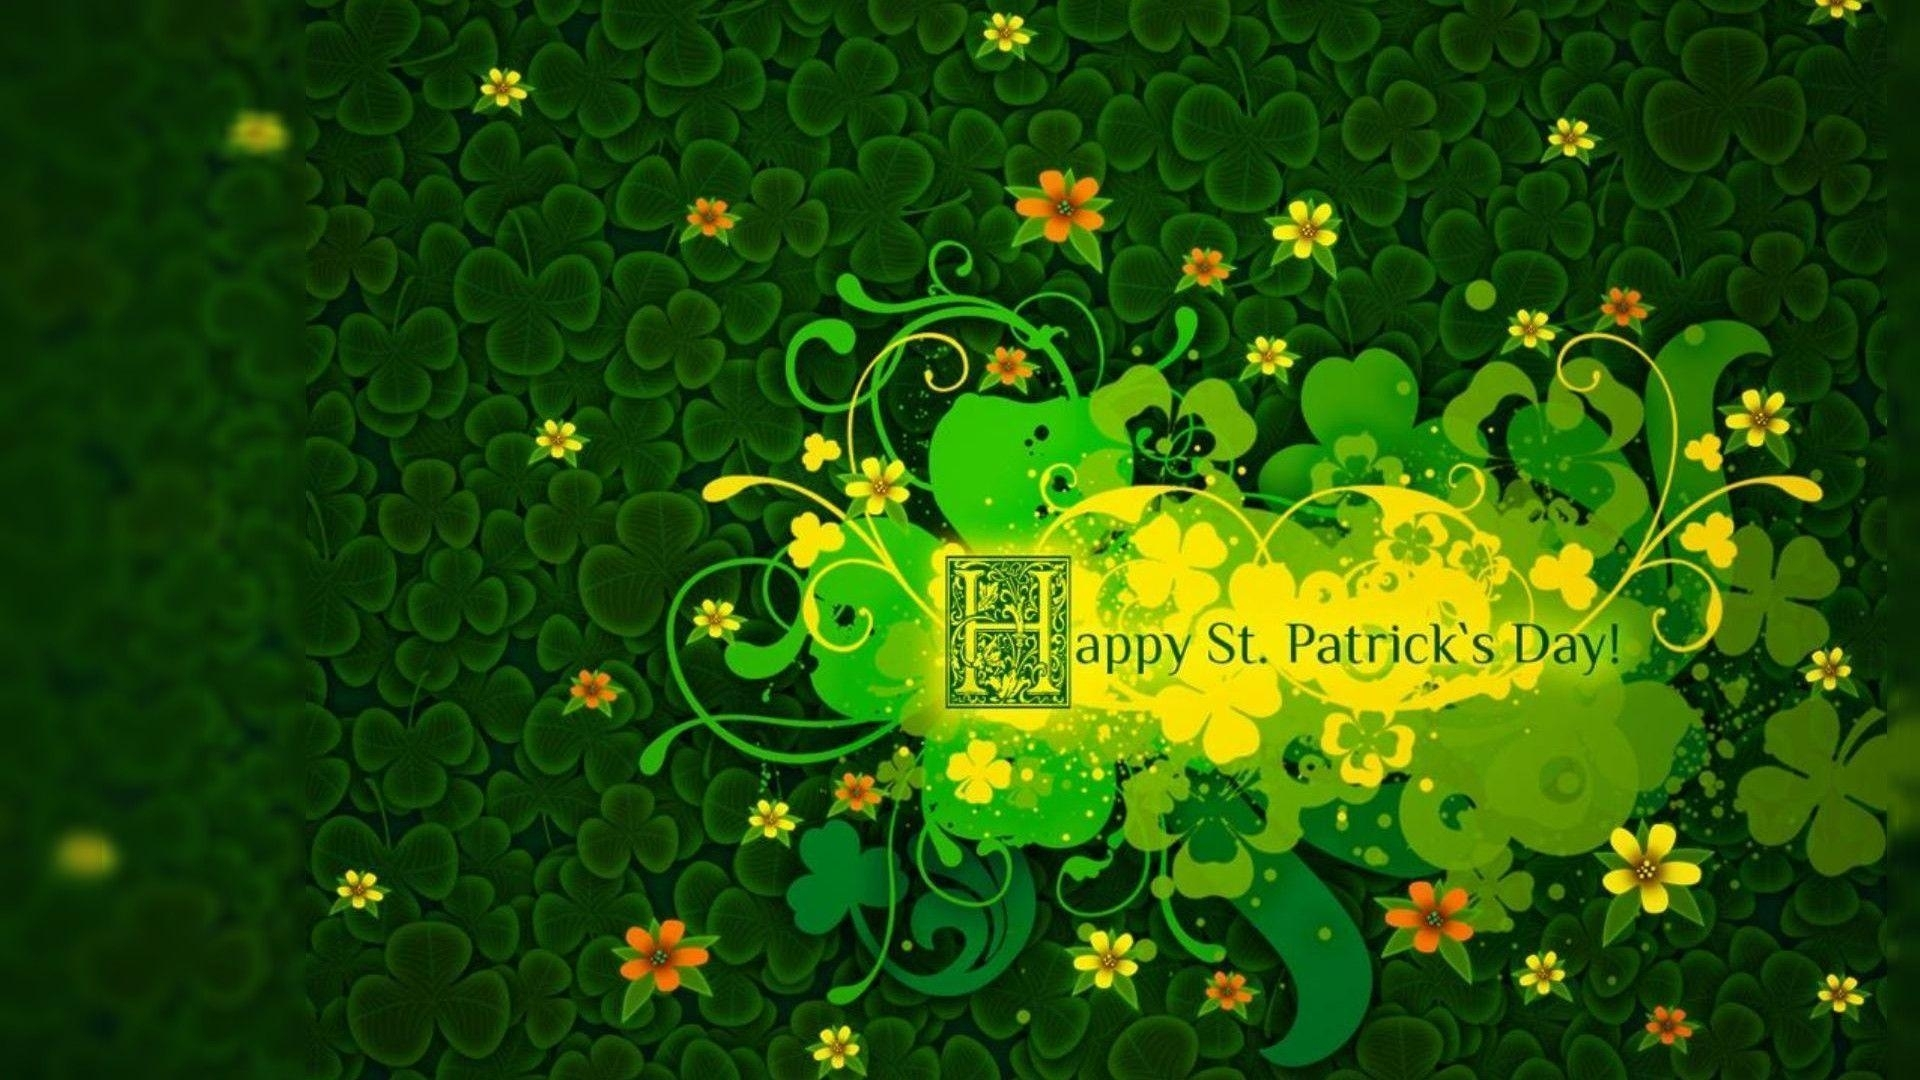 st patricks day wallpapers desktop - wallpaper cave